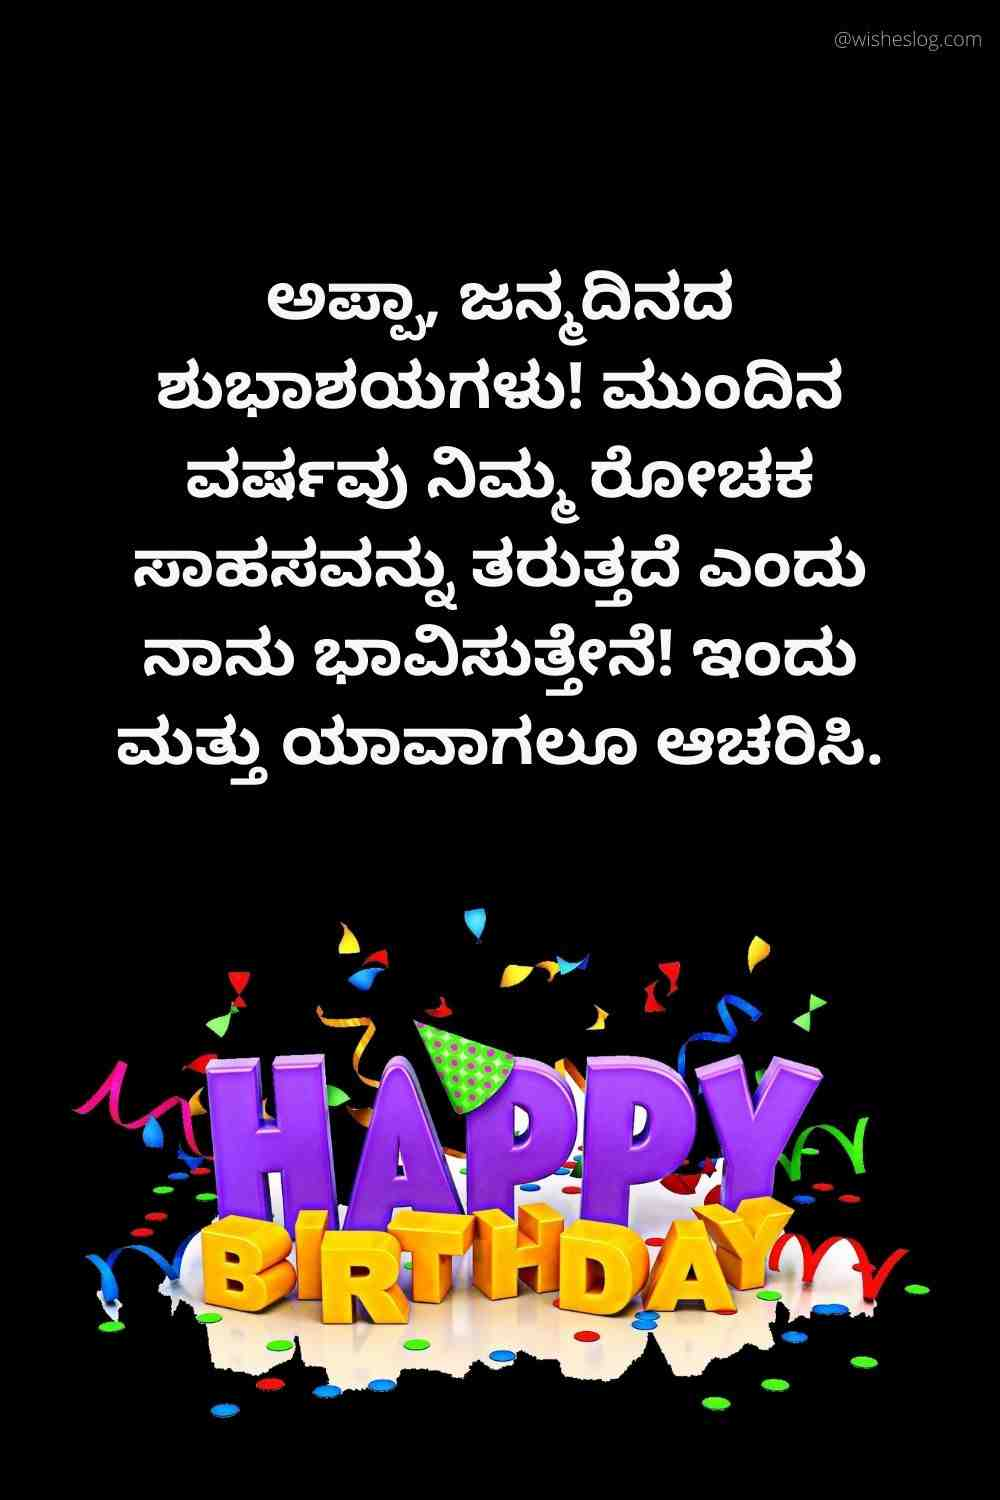 happy birthday wishes in kannada for father